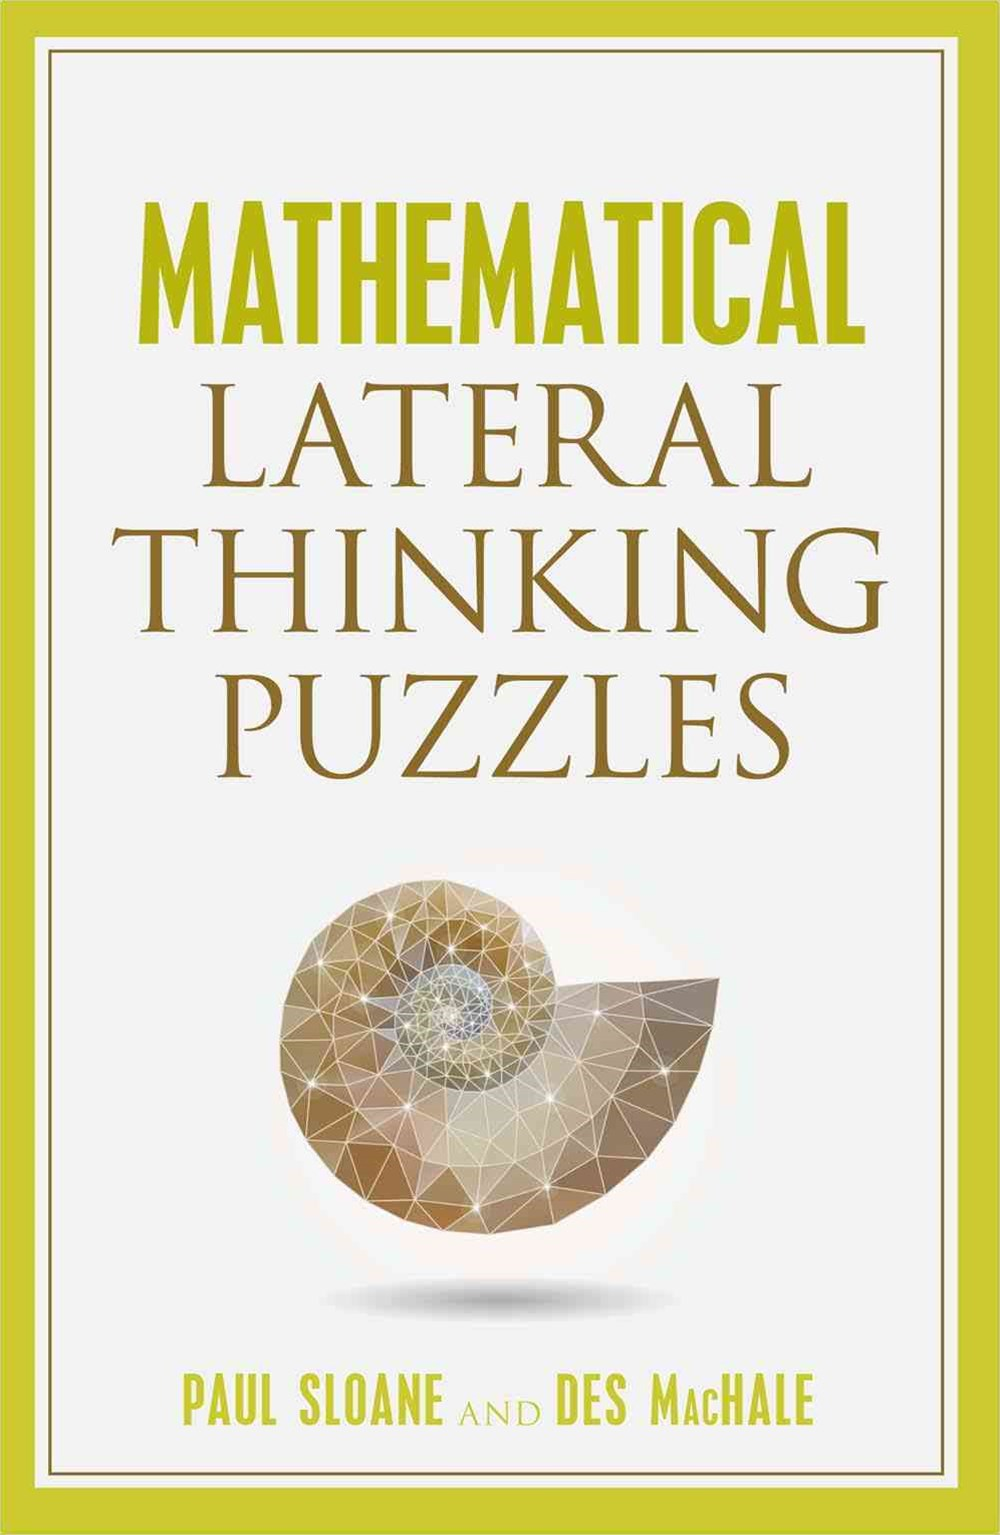 Mathematical Lateral Thinking Puzzles